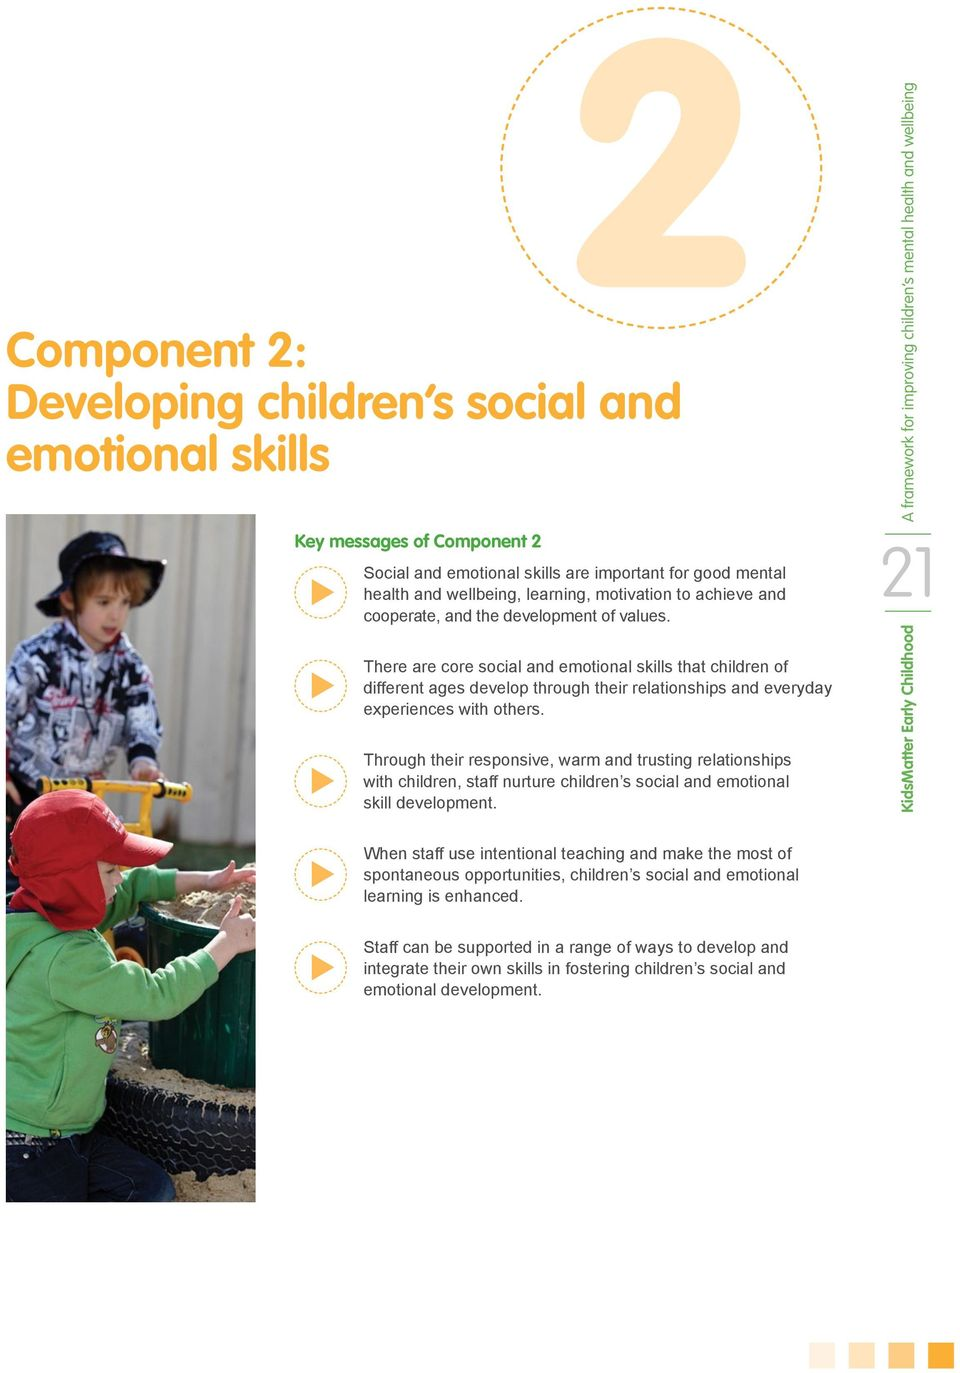 There are core social and emotional skills that children of different ages develop through their relationships and everyday experiences with others.